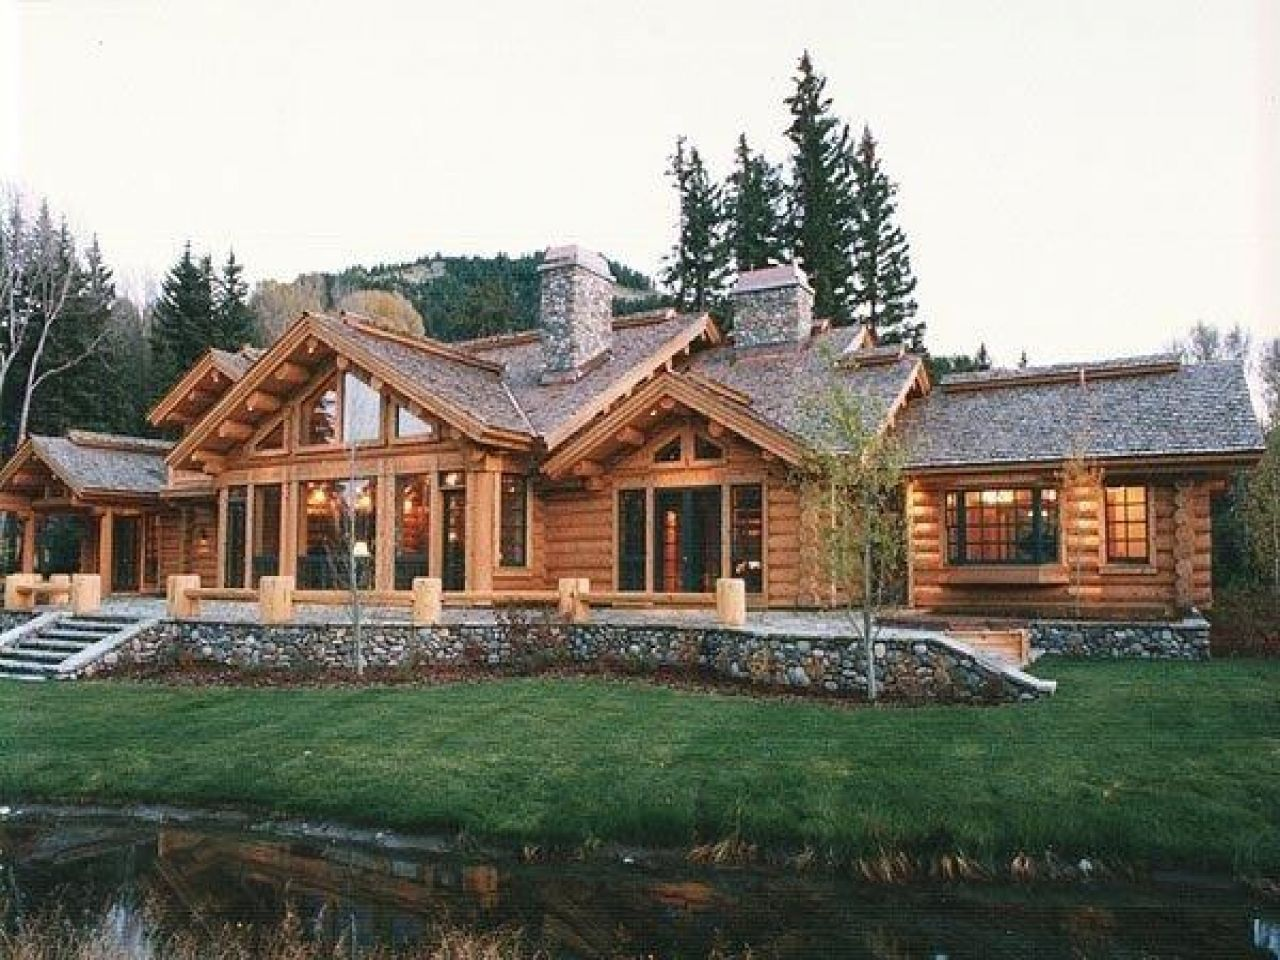 Log Homes Cabin Ranch Style Mexzhouse Home Plans Ranchers Log Homes Cabins And Cottages Barbie Dream House